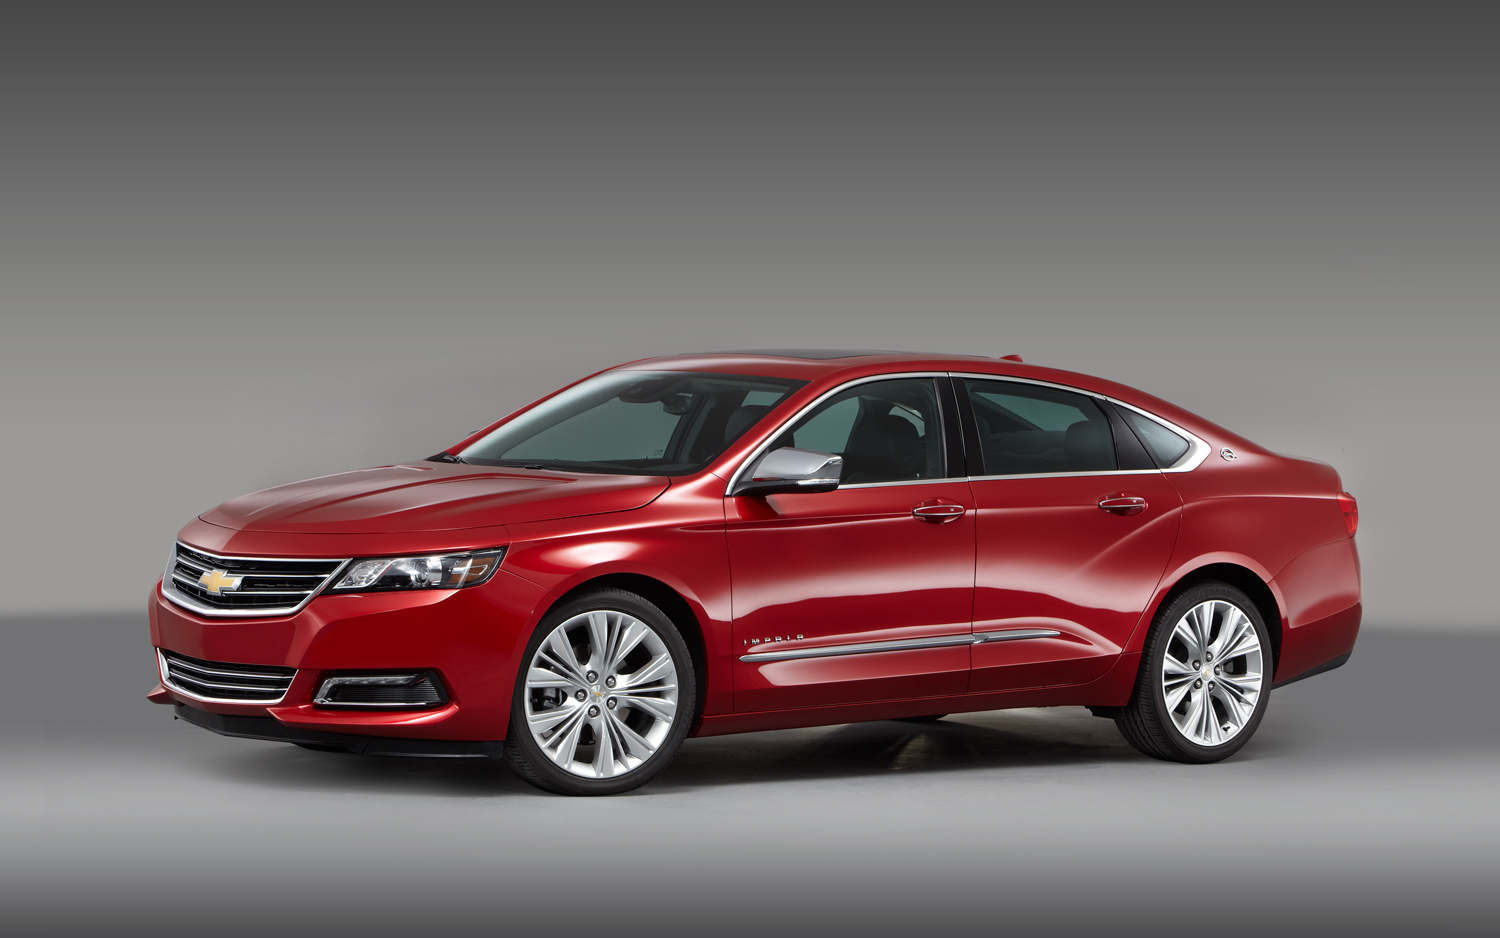 hight resolution of chevrolet impala for sale in temple hills md